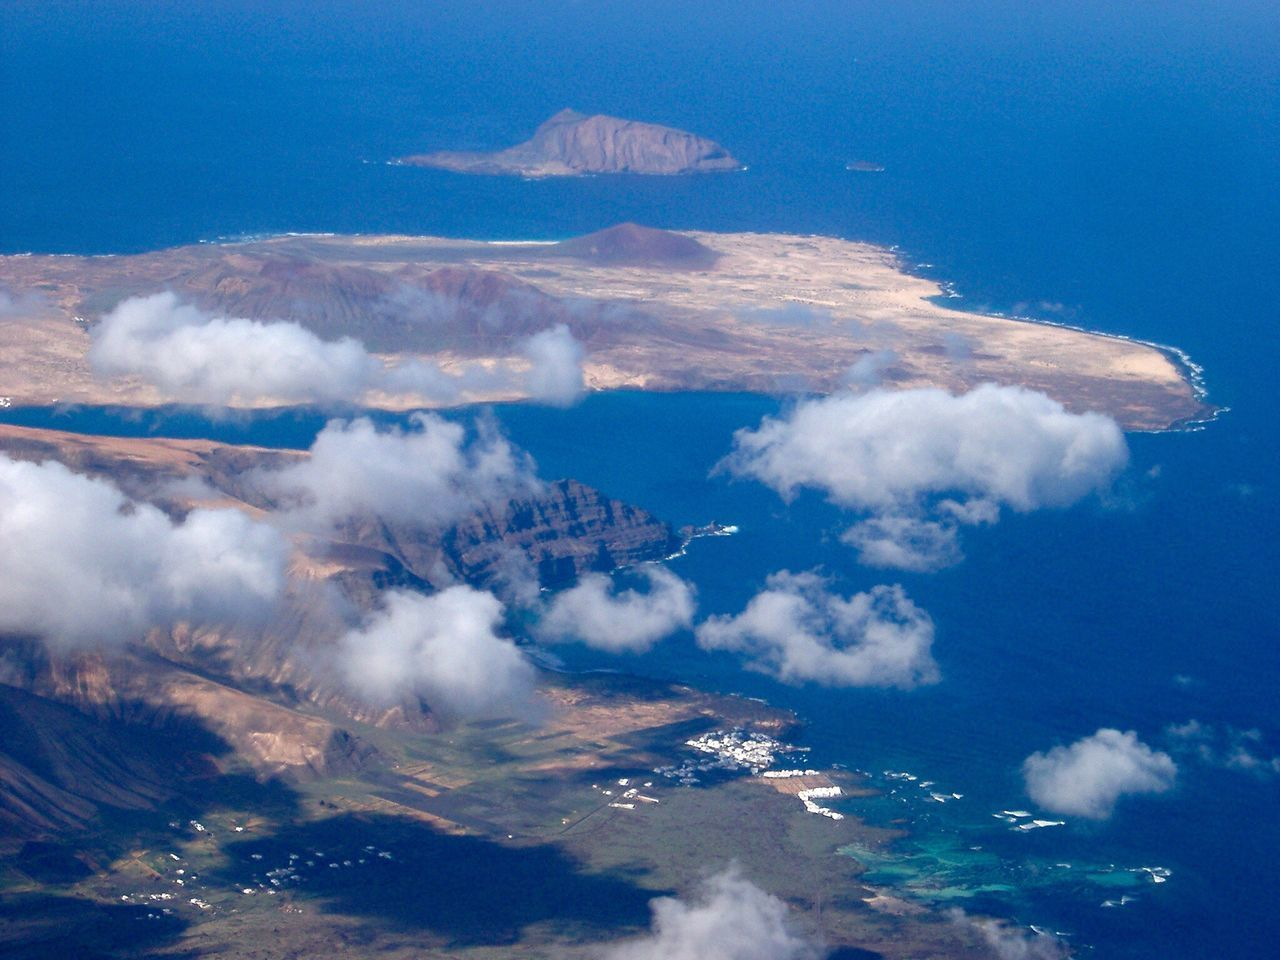 Cloud - Sky Aerial View Outdoors Coastline Flighing High EyeEmNewHere Sea And Sky Island Aerial Photography Lanzarote Island Geographic